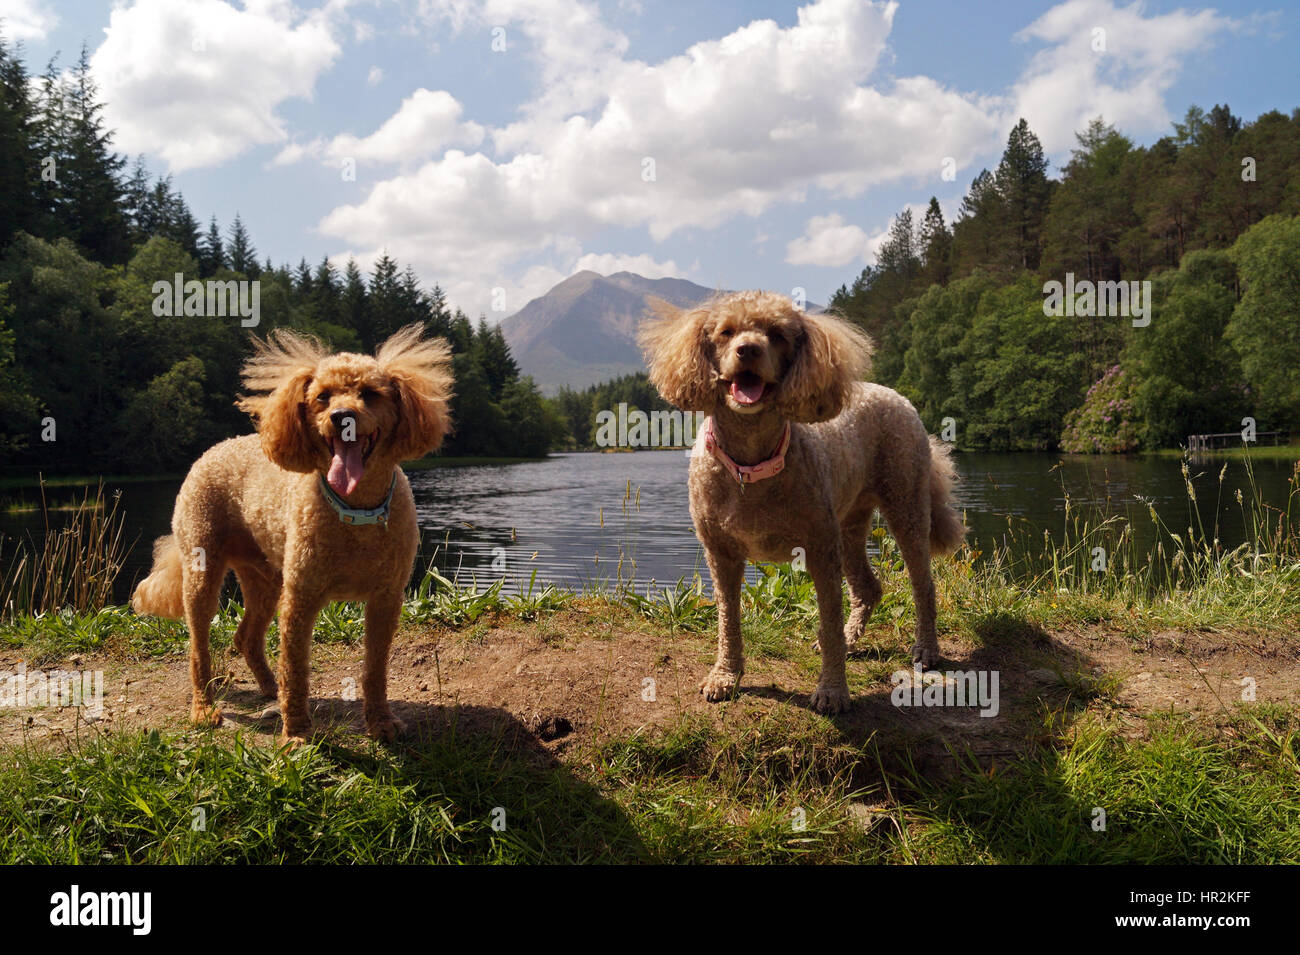 Red and Brown Toy Miniature Poodles Out Adventuring and Exploring at Glencoe Lochan with Glencoe in background - Stock Image